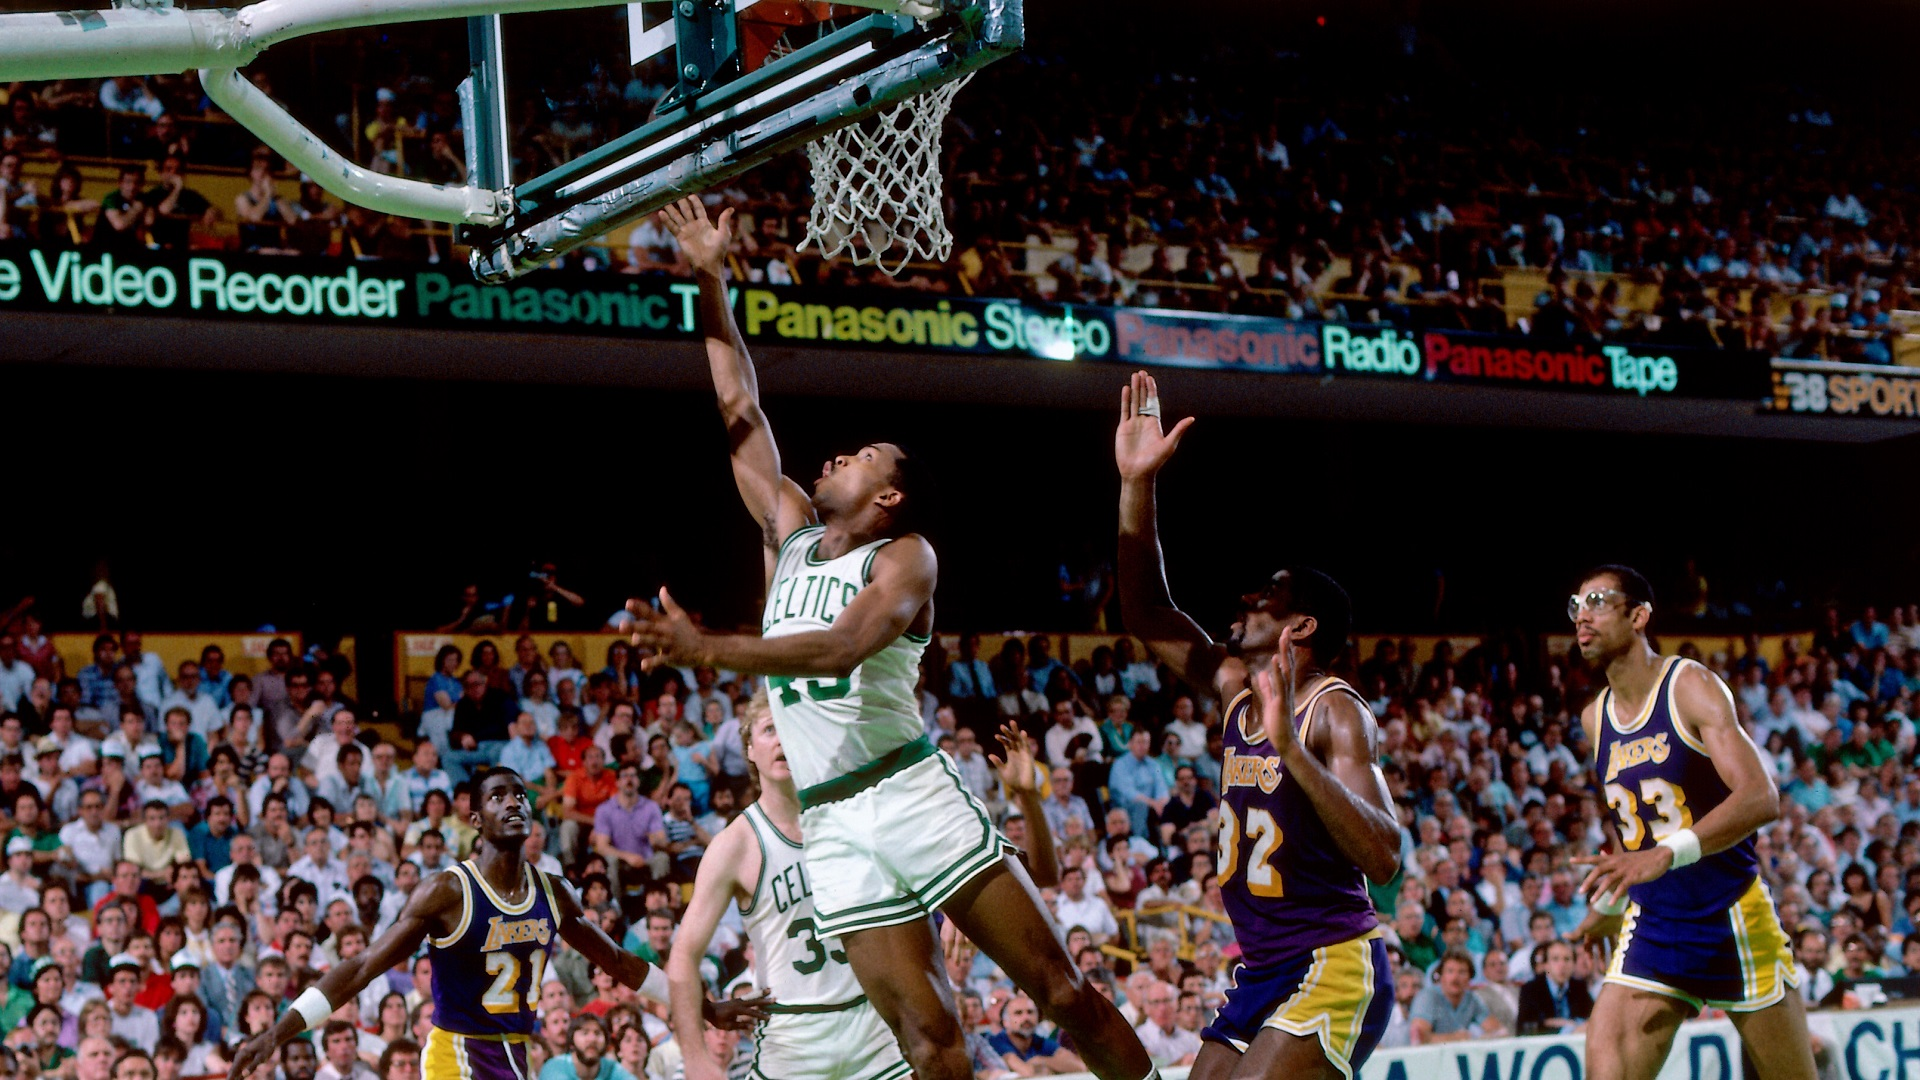 Top Moments: Gerald Henderson's steal turns tide in 1984 Finals